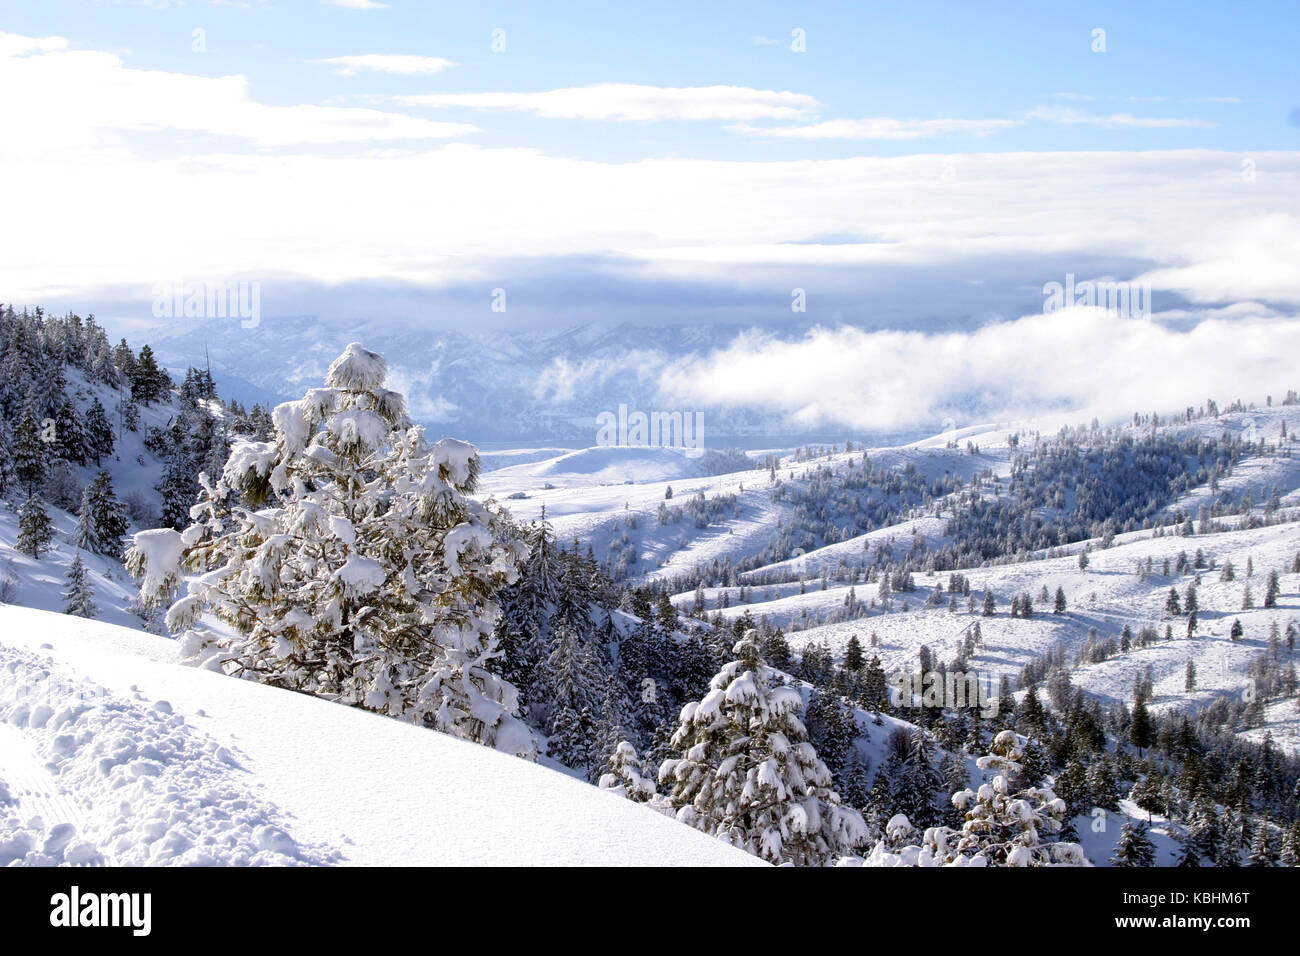 a winter scene of the lake chelan valley from the echo ridge nordic